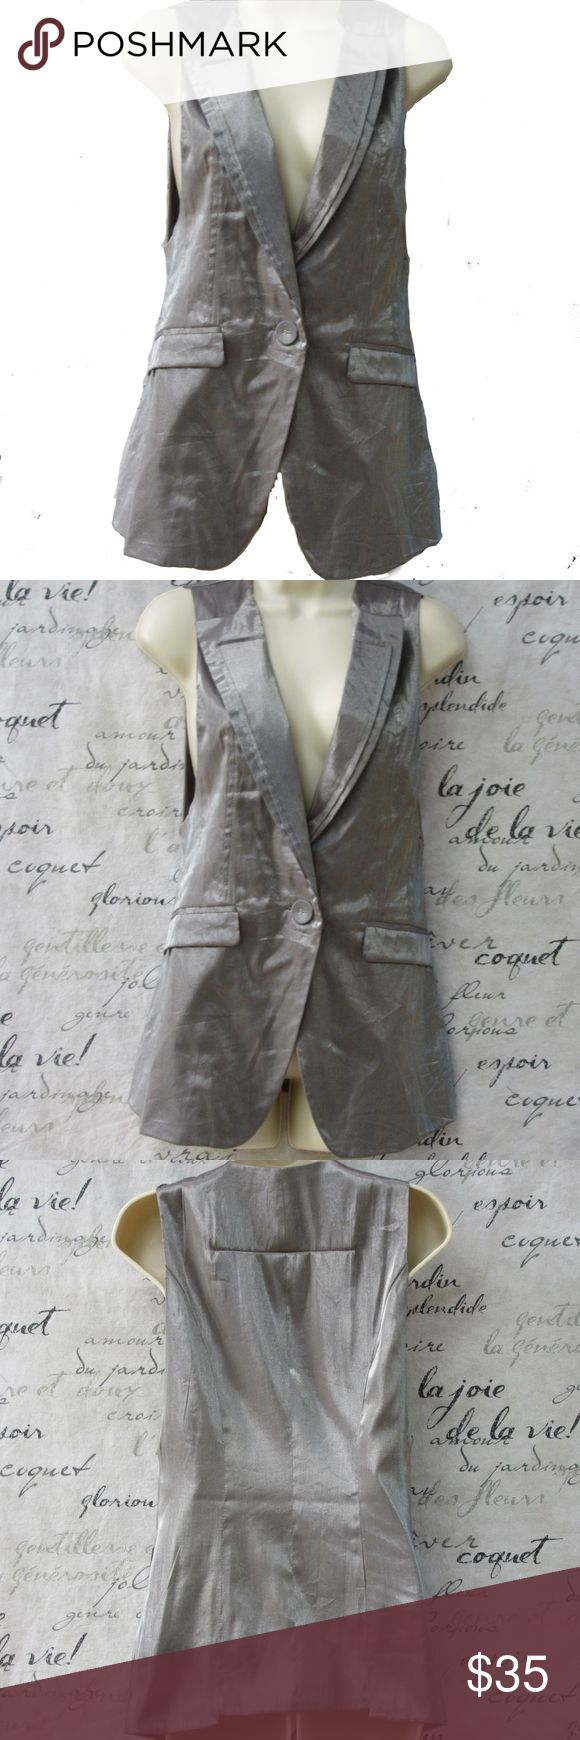 """Renee C. Silver Metallic Vest w/ Lapels NWOT Be on trend for Fall & Winter. Silver is hitting the runways. This vest is shiny silver with lapels that look doubled. The armholes have a slight square cut and there is a 7"""" x 1/2 cut out at the rear bottom edge for a futuristic feel. 75% rayon; 25% nylon. 28"""" long; 17"""" across underarms. Never been worn and replacement button still attached to tag. Perfect condition. Renee C. Tops"""